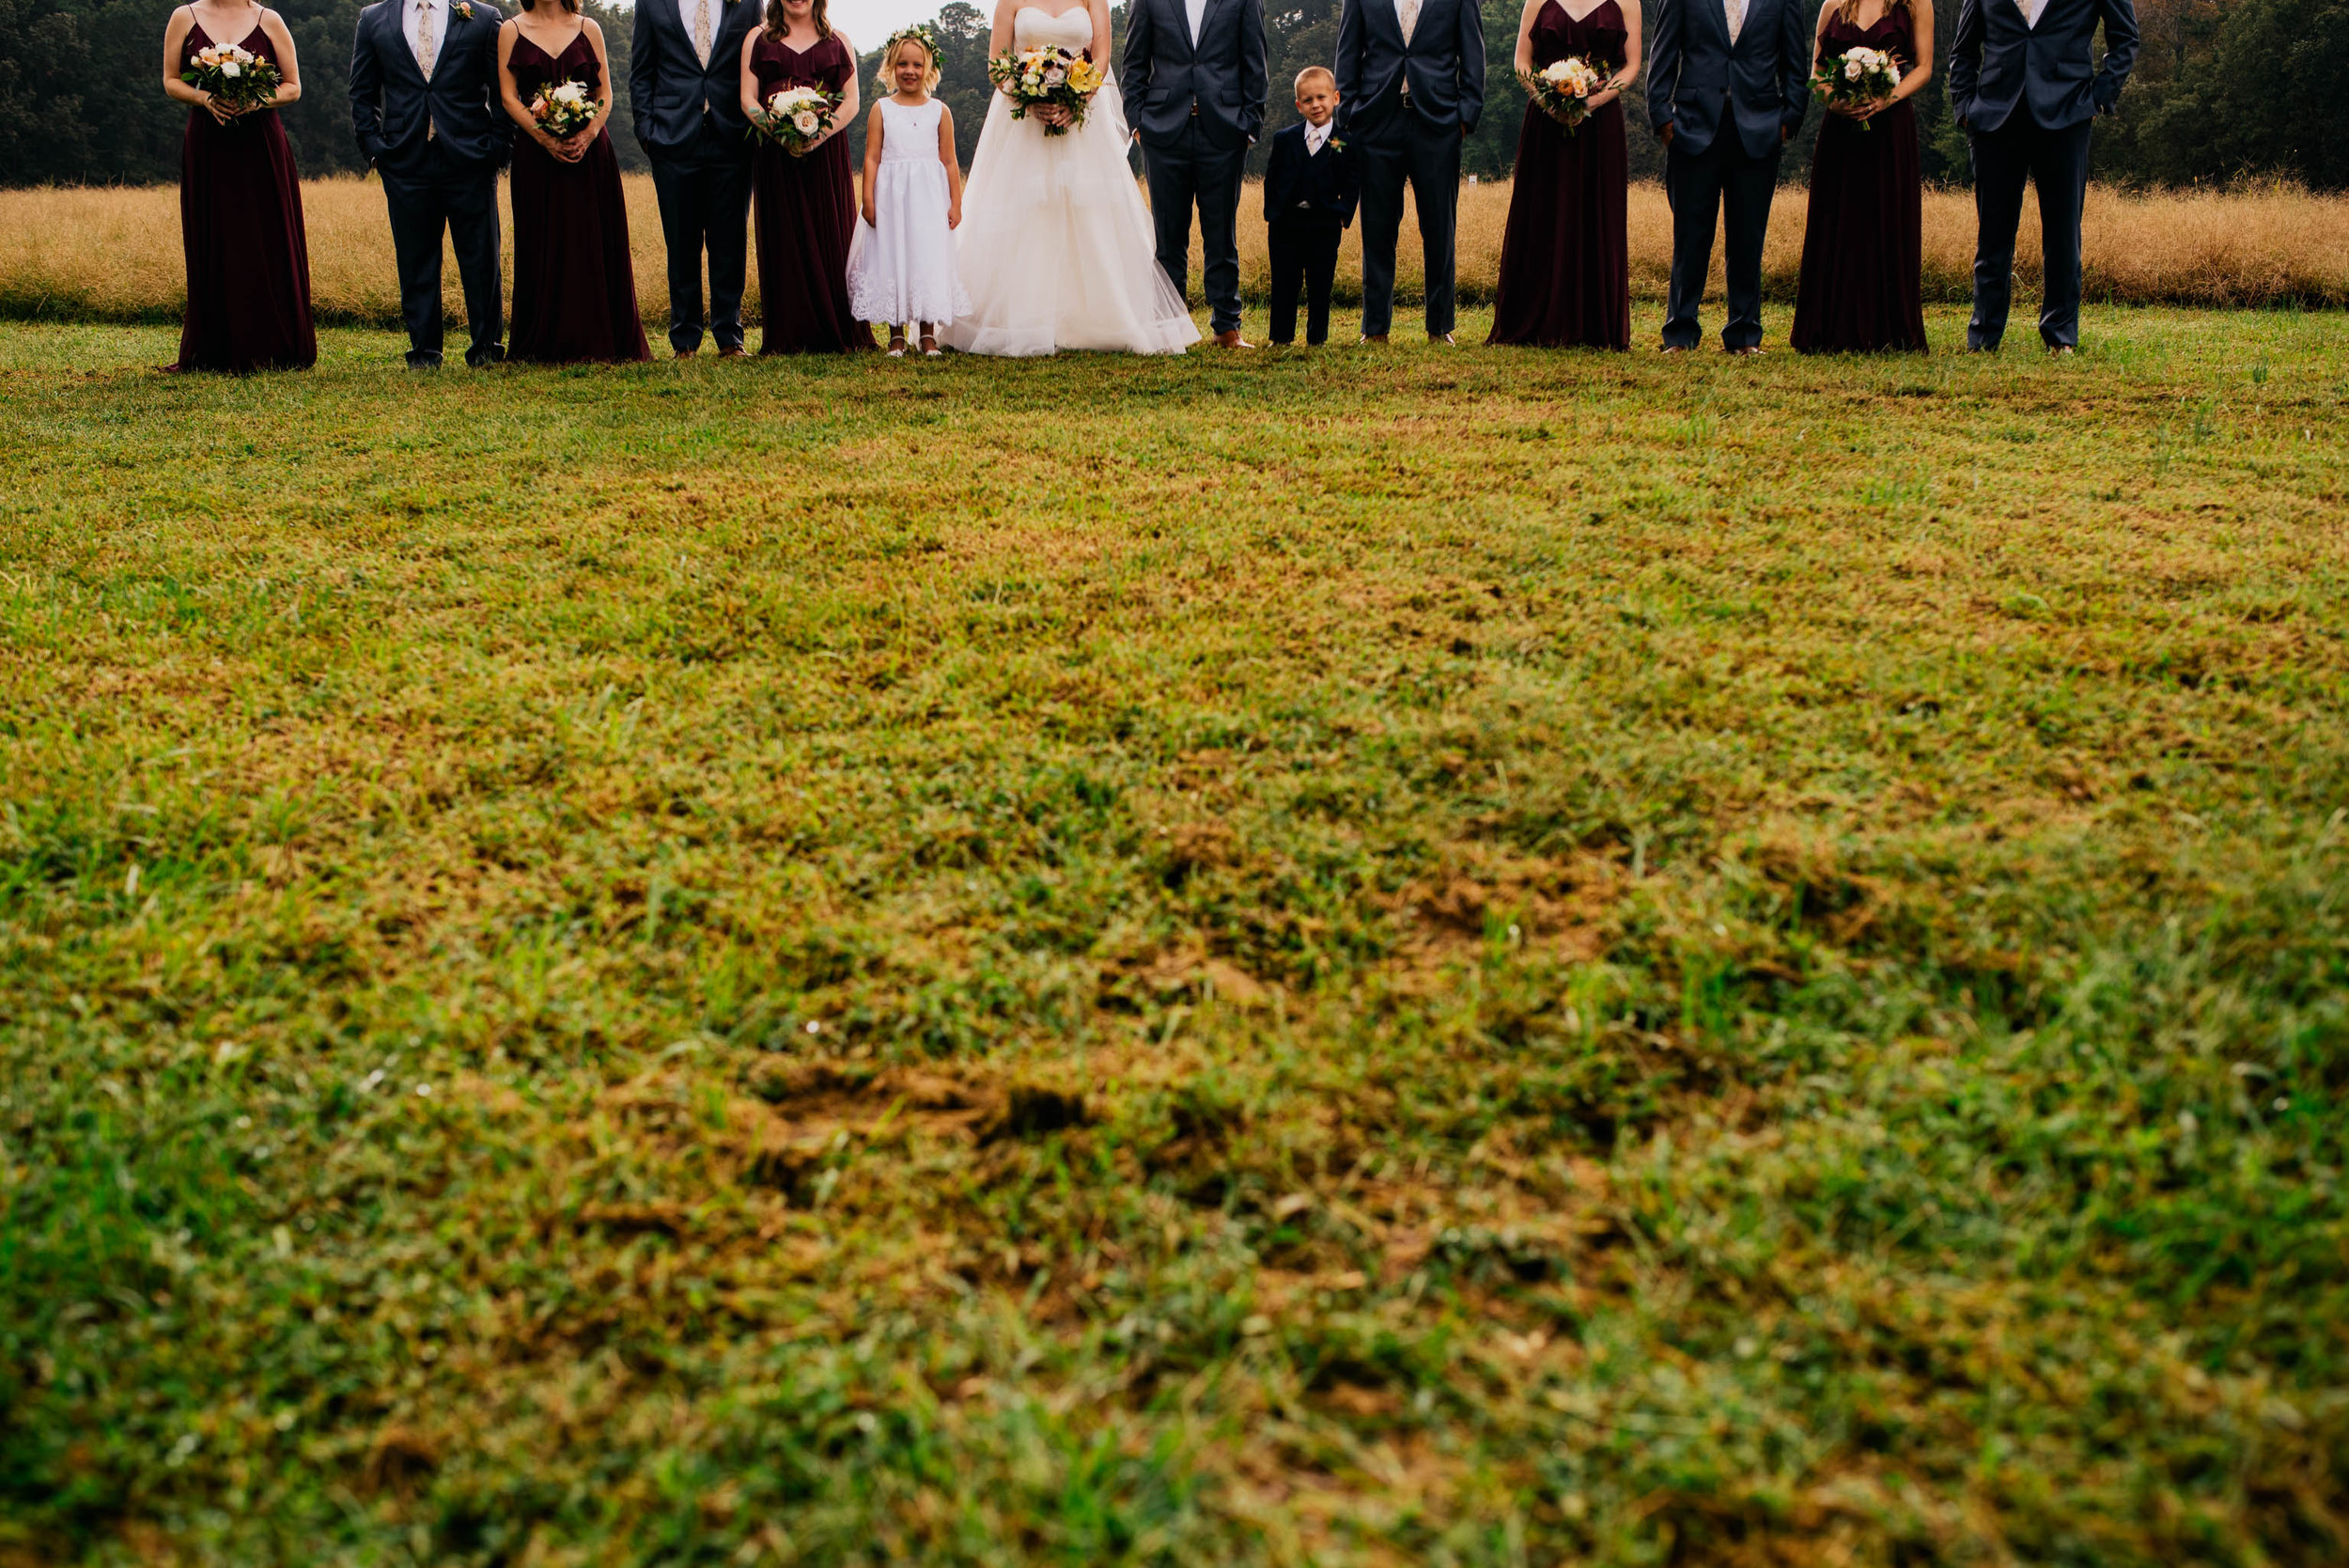 a cropped photo of the entire wedding party to show the flower girl and the ring bearer